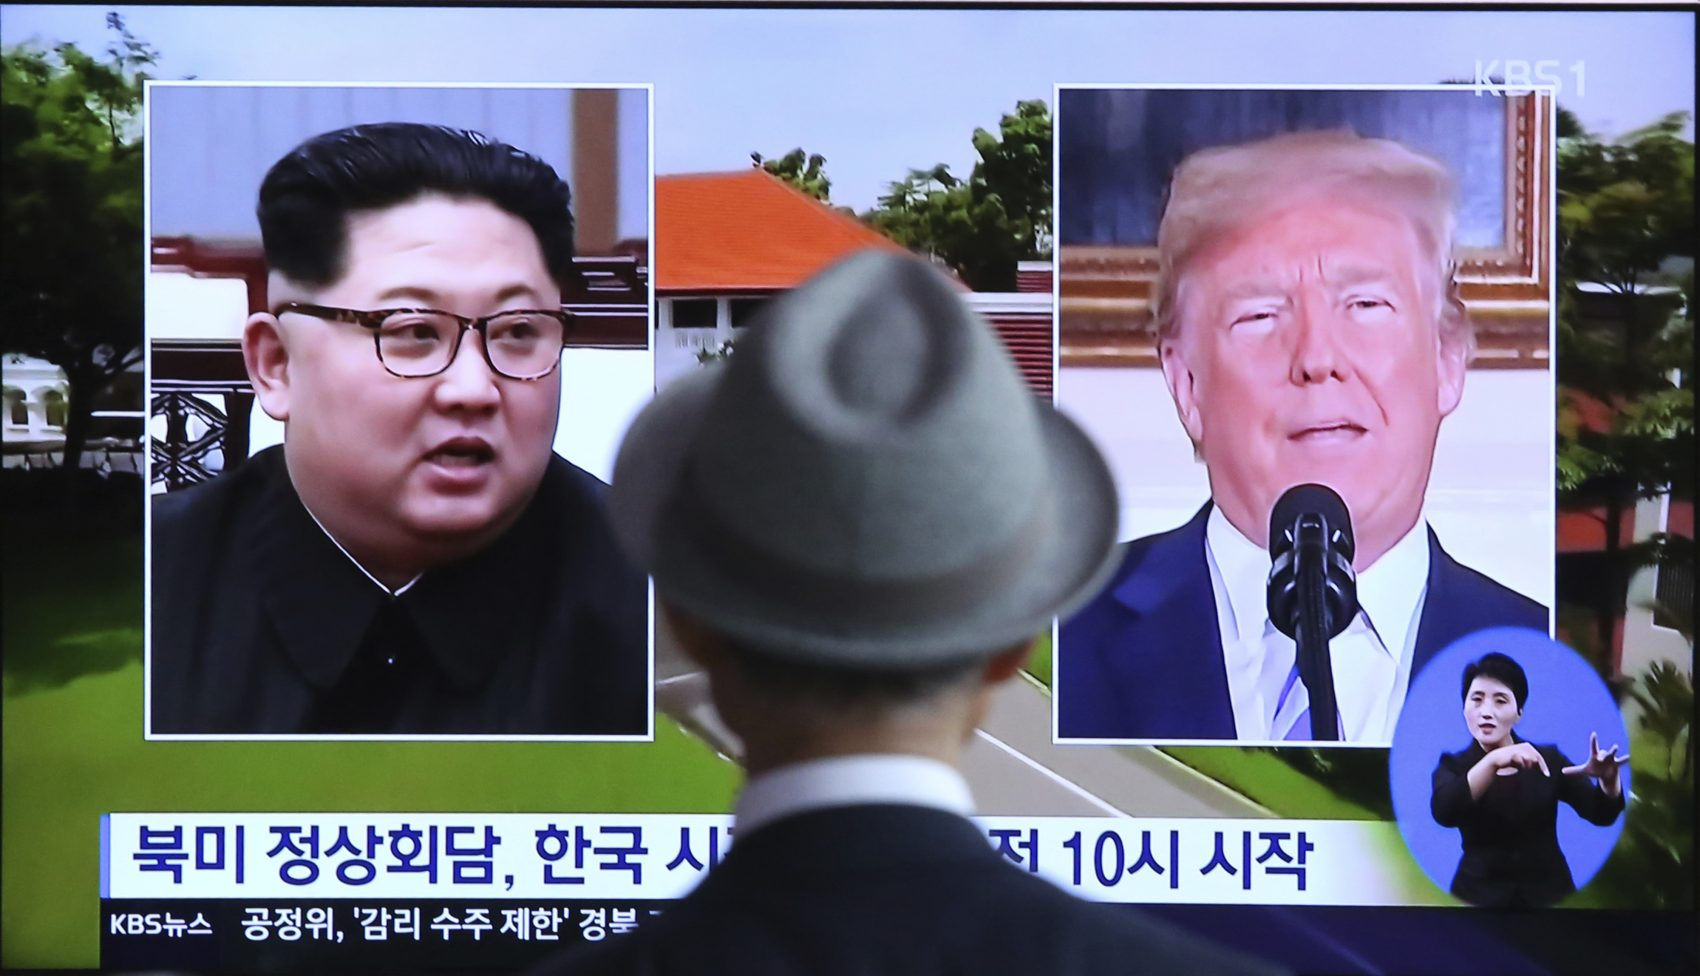 """A man watches a TV screen showing file footage of U.S. President Donald Trump, right, and North Korean leader Kim Jong Un during a news program at the Seoul Railway Station in Seoul, South Korea, Monday, June 11, 2018.  Final preparations are underway in Singapore for Tuesday's historic summit between President Trump and North Korean leader Kim, including a plan for the leaders to kick things off by meeting with only their translators present, a U.S. official said. The signs read: """"Summit between the United States and North Korea."""" (Ahn Young-joon/AP)"""